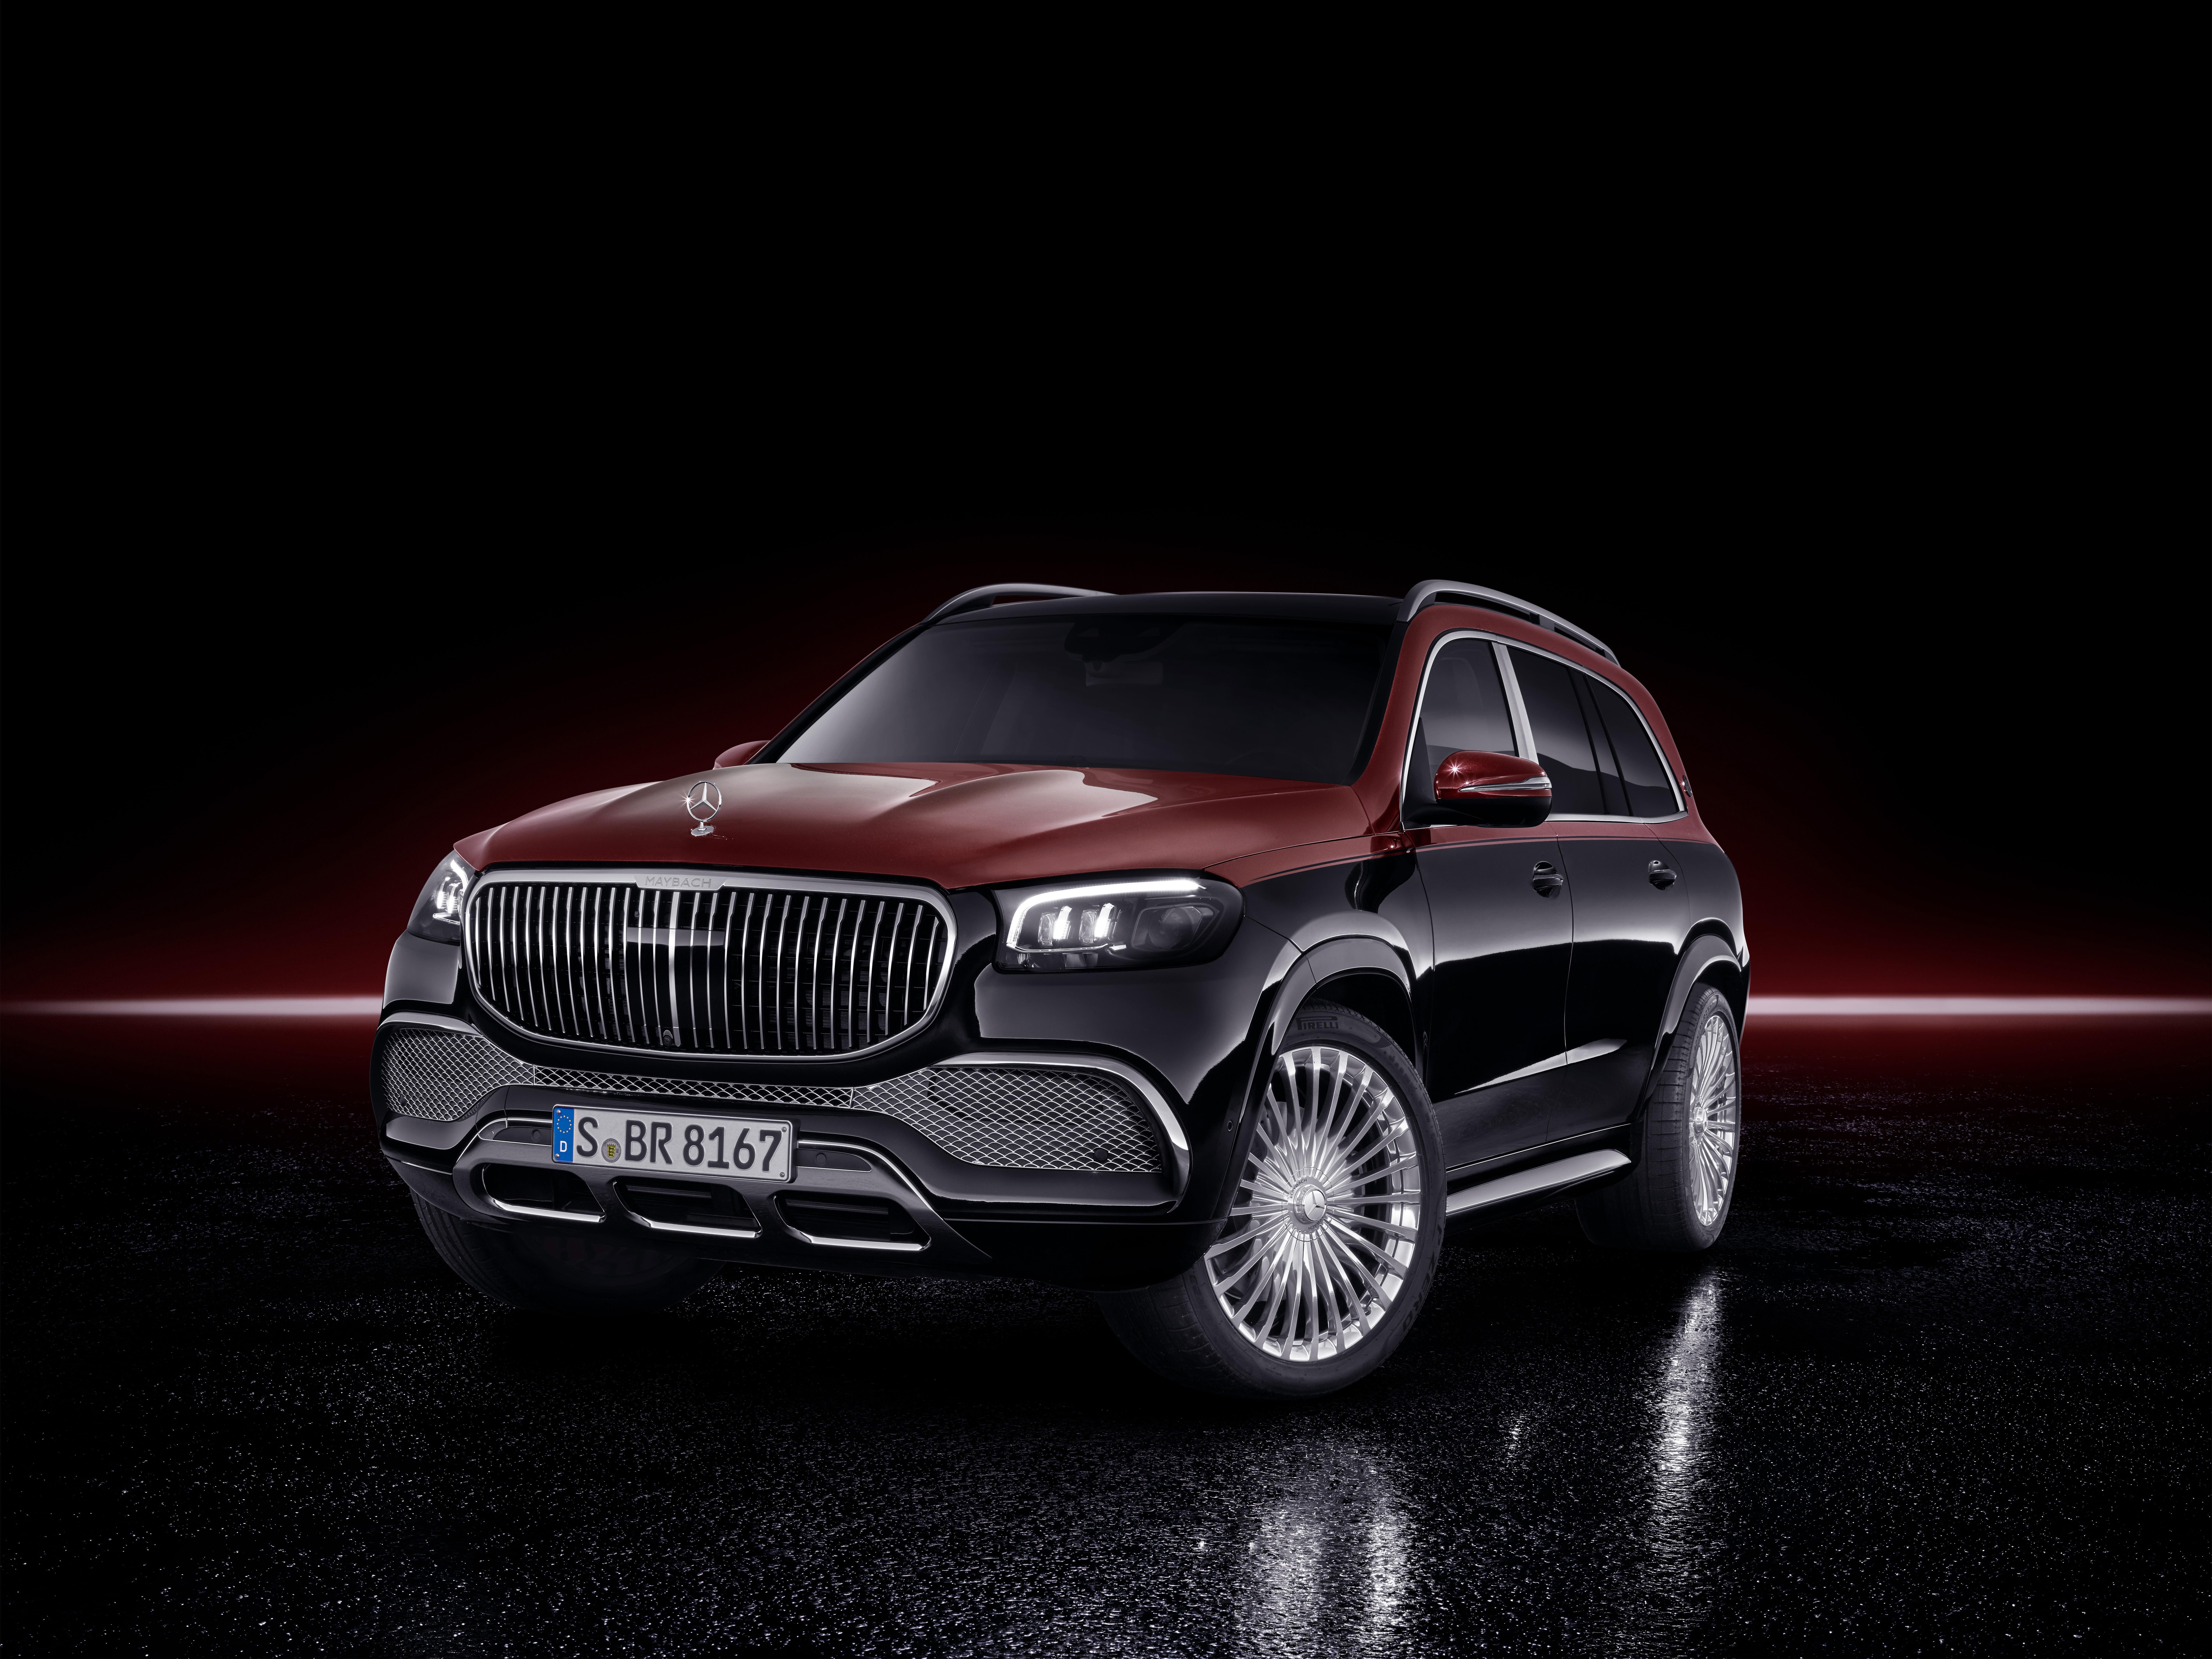 Mercedes Maybach Gls600 Is The Brand S Chauffeur Ready Top Model